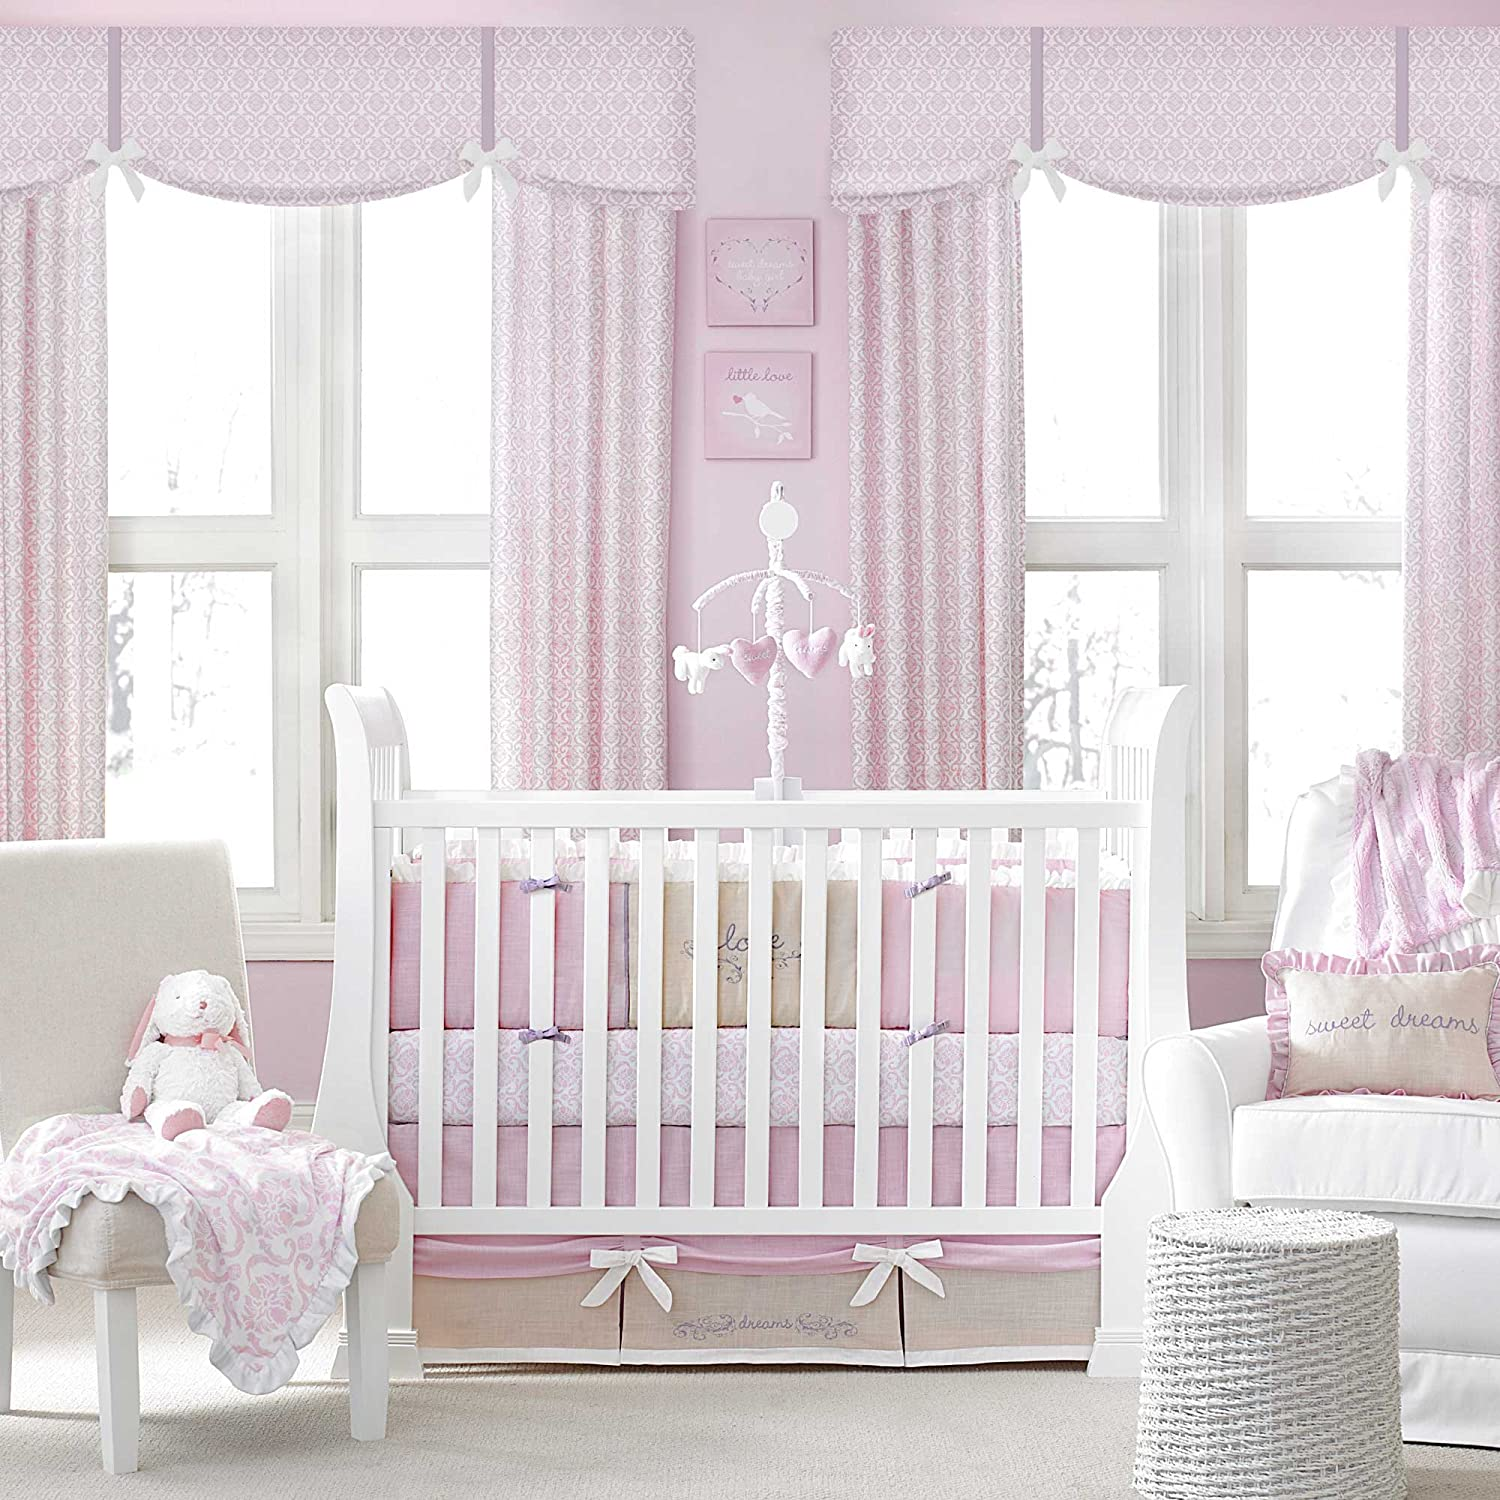 Sweet Baby Dreams Baby Bedding Collection by Wendy Bellissimo